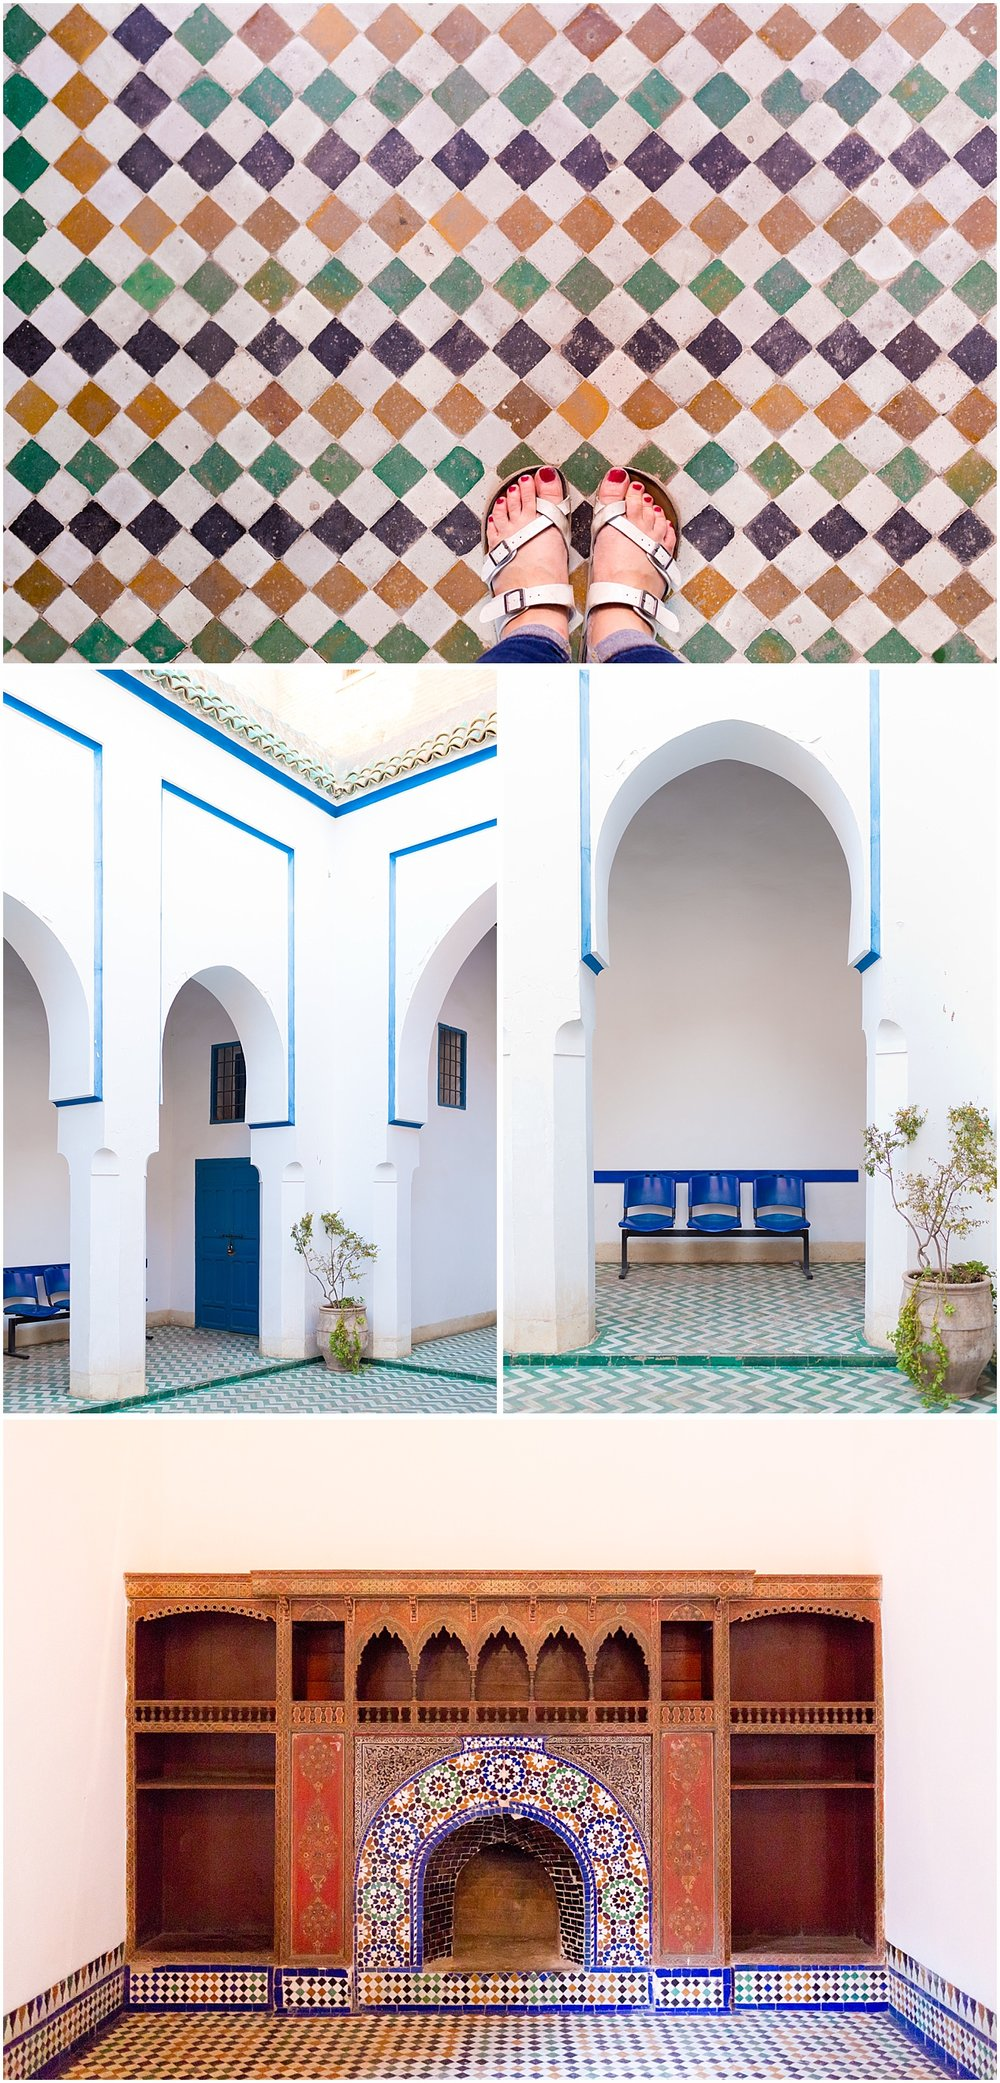 entryway of Bahia Palace with mosaic tile, blue and green decor - Morocco travel blog